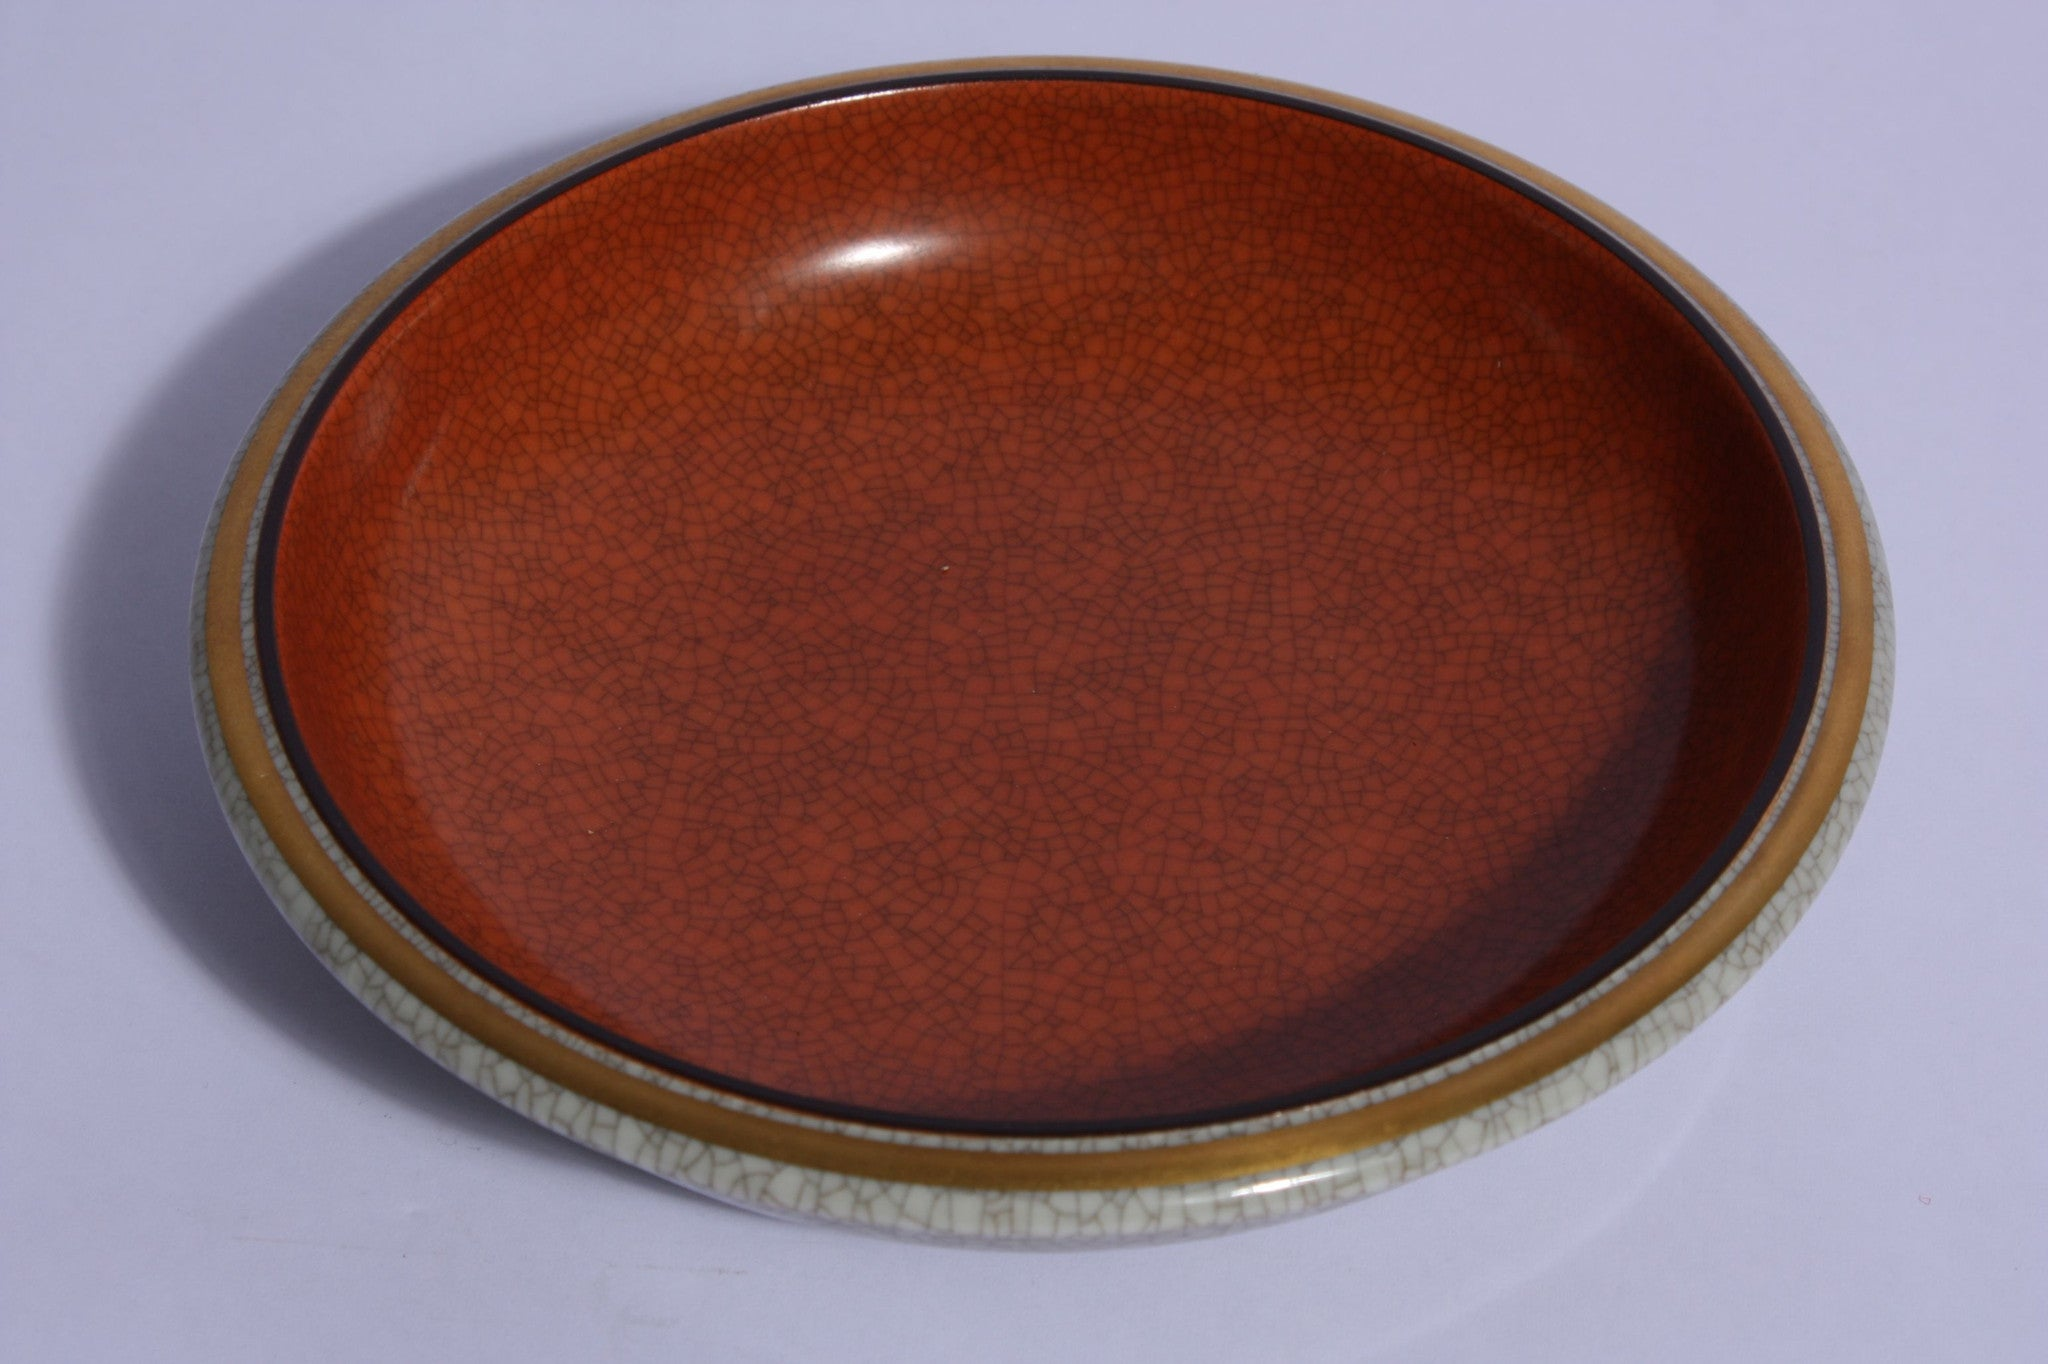 Royal Copenhagen crackleware plate no. 2